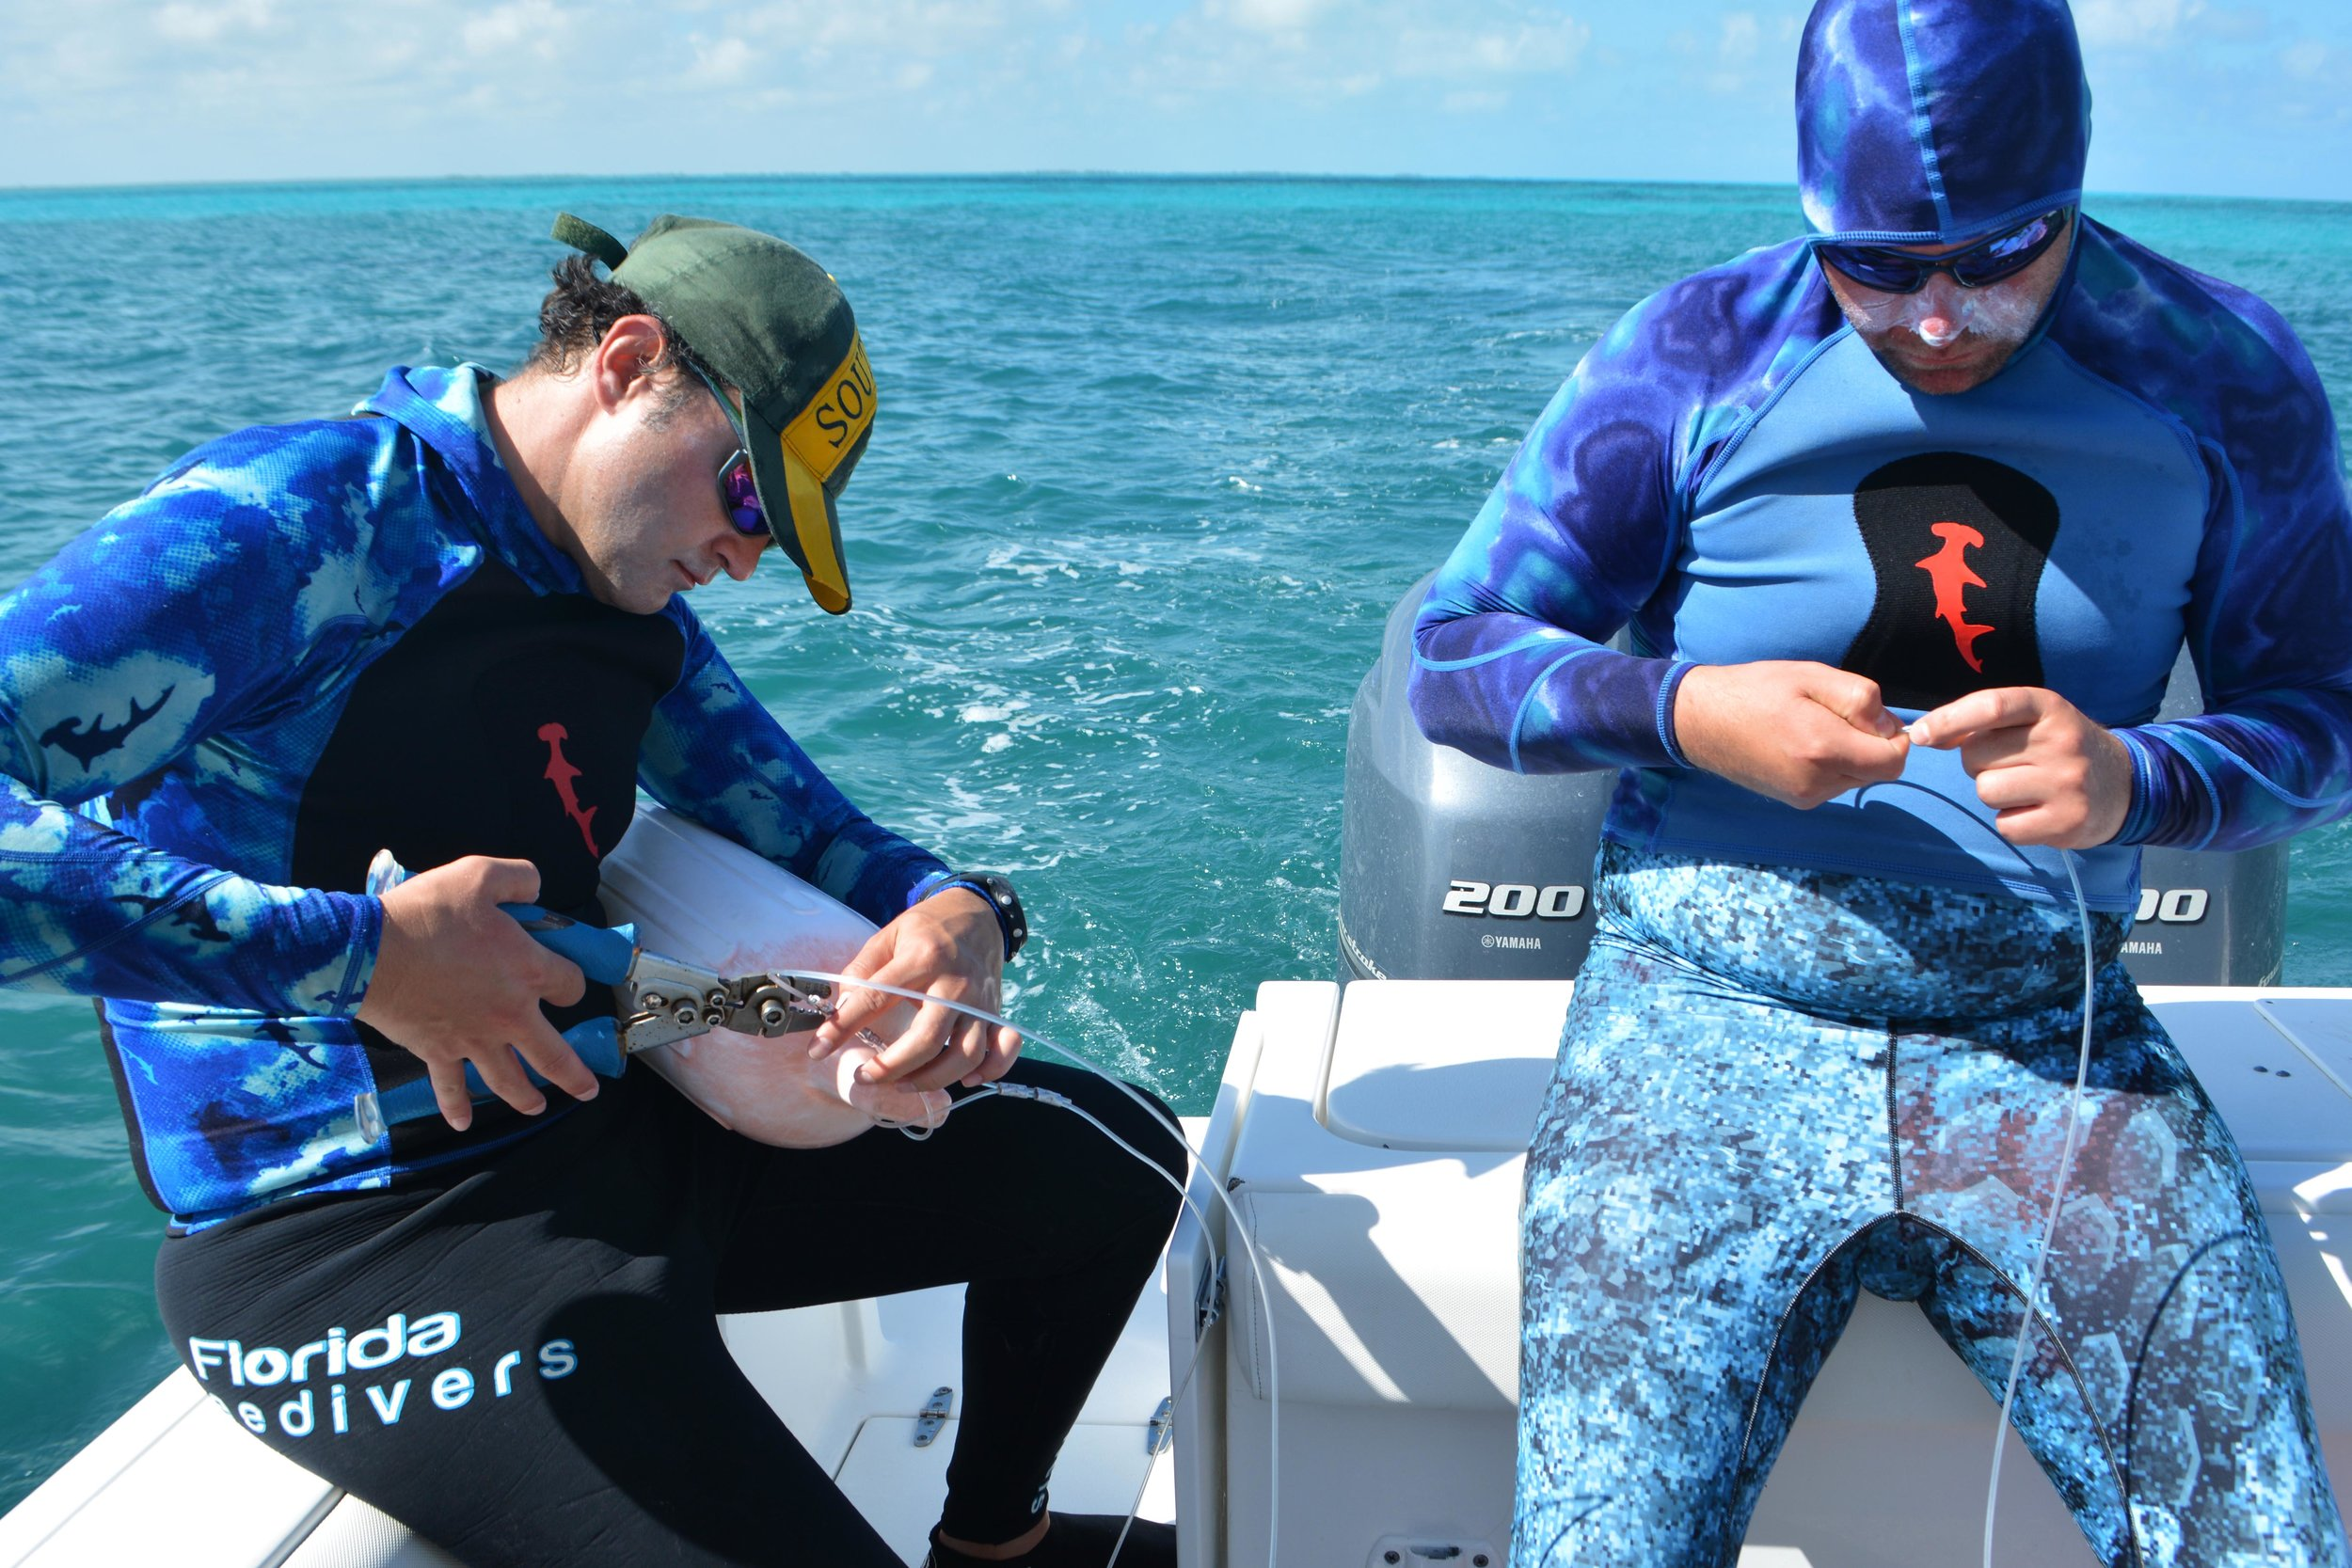 Guests Maxi and Nicky assist with building the shark block rigs